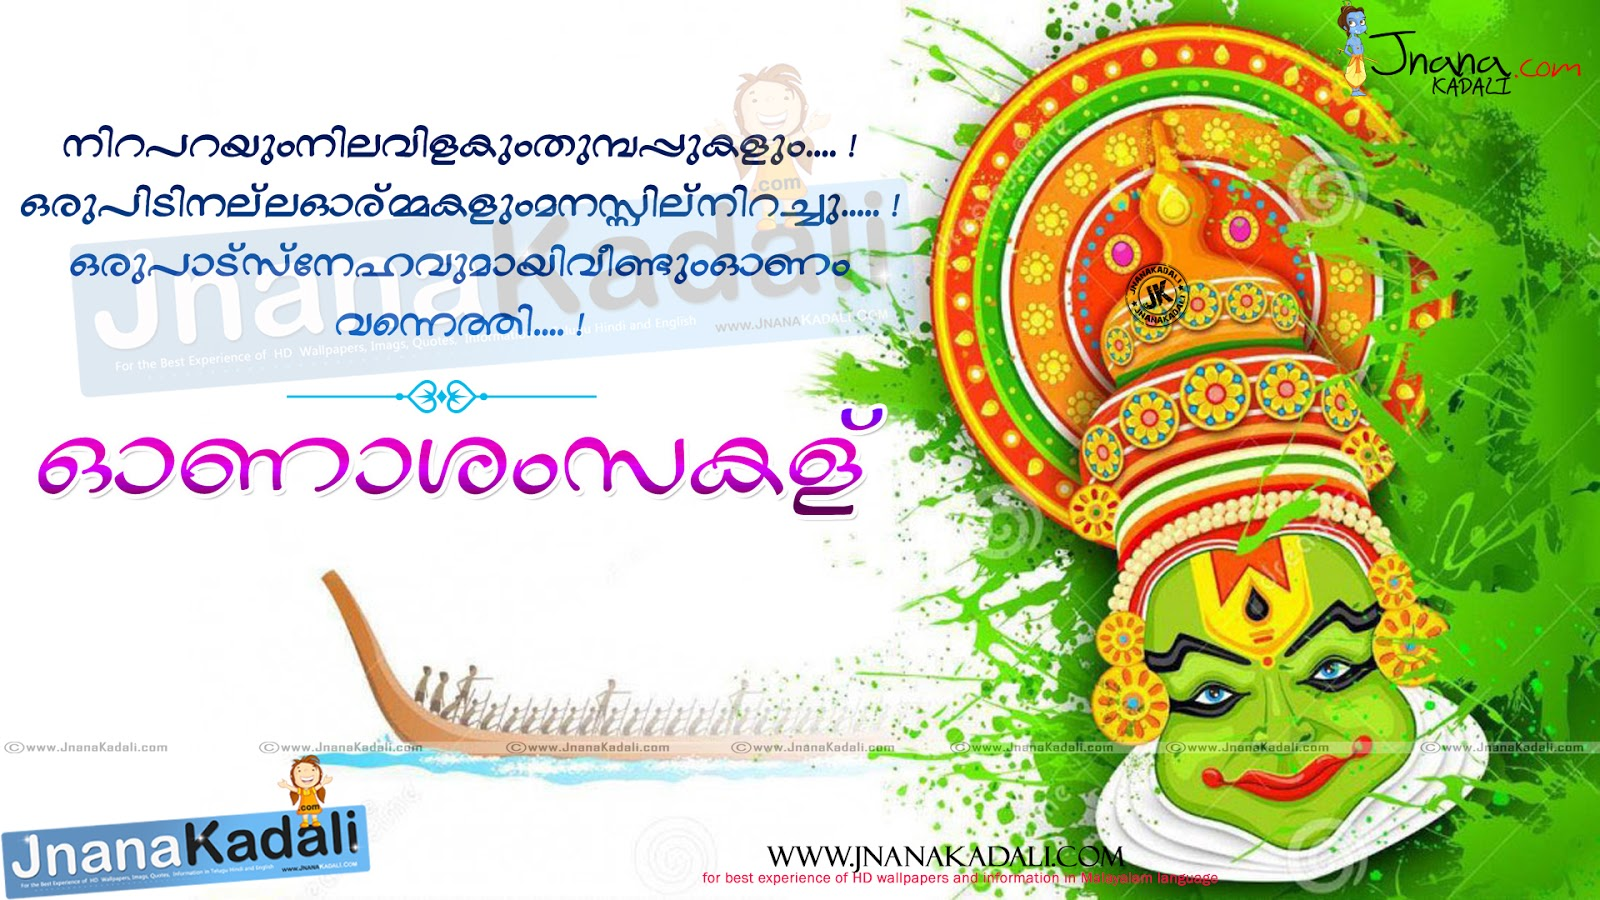 about onam in malayalam language Essay about onam festival in malayalam language  next page essay about air pollution in india article a a place describing an write visit to a typical analysis of issue topic may be something like does lowering tax rates increase economic growth.